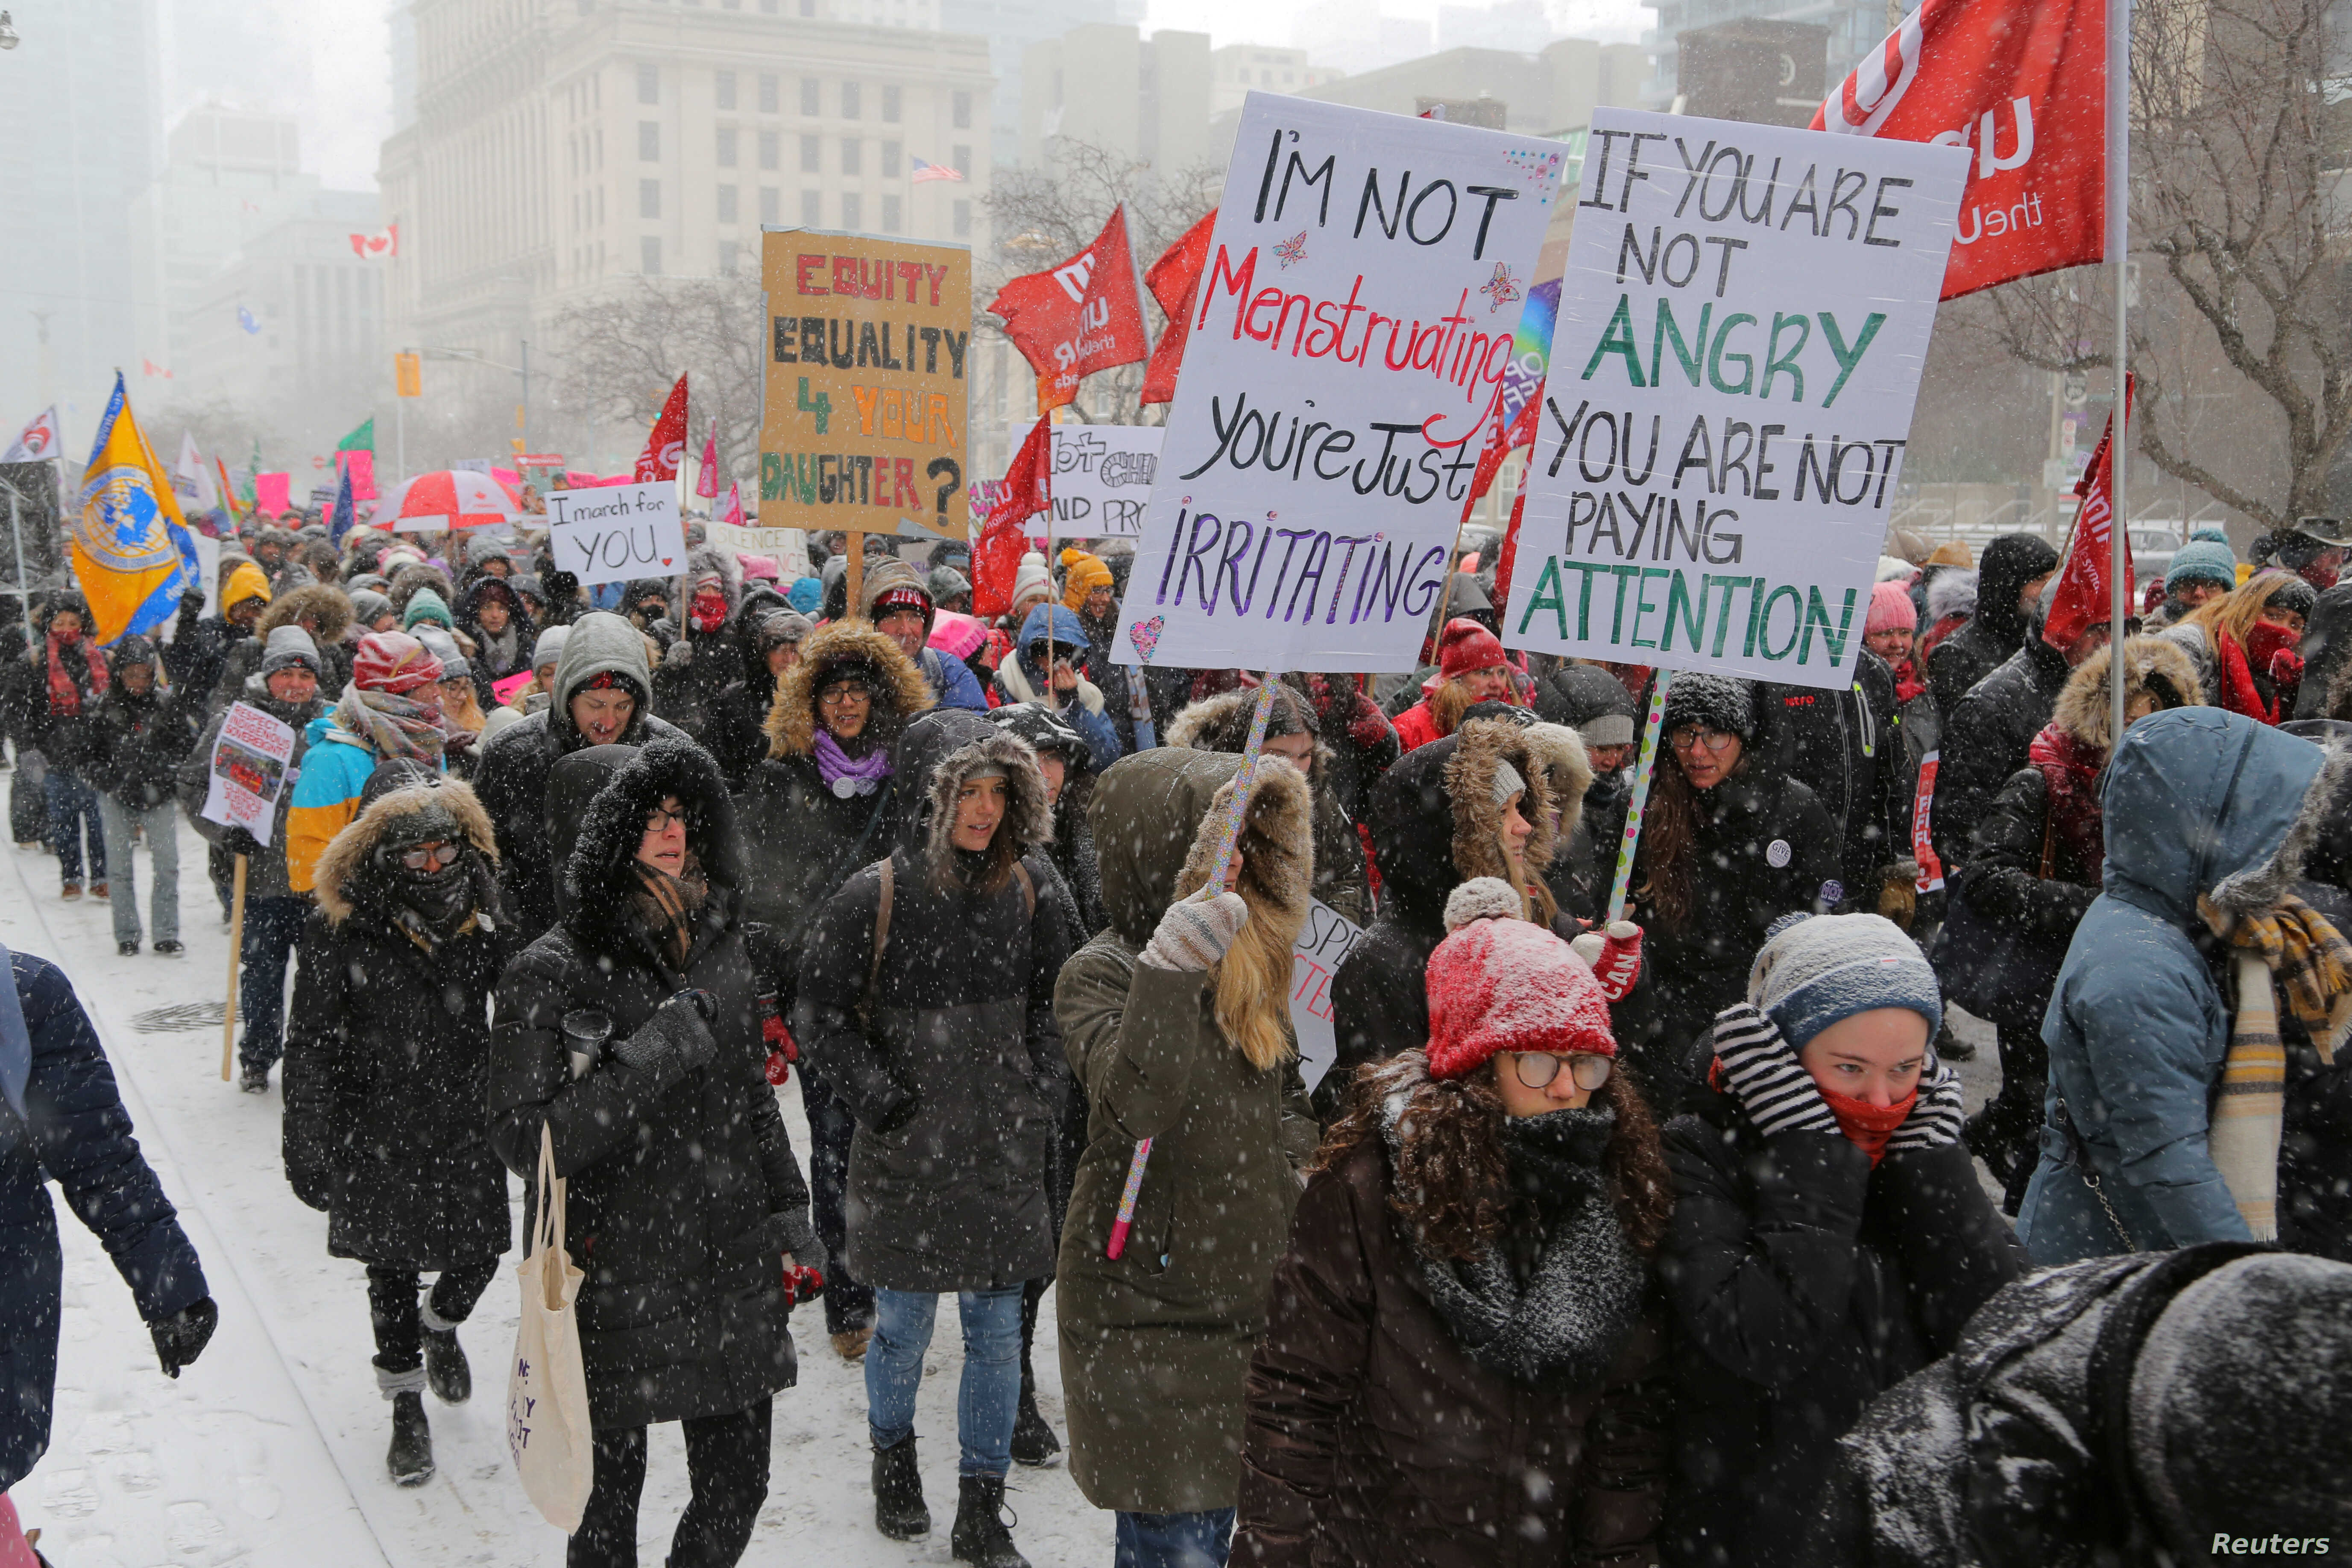 Participants walk to the Ontario provincial legislature during the Women's March in a -22 Celsius (8 Fahrenheit) wind chill snowstorm in Toronto, Ontario, Jan. 19, 2019.